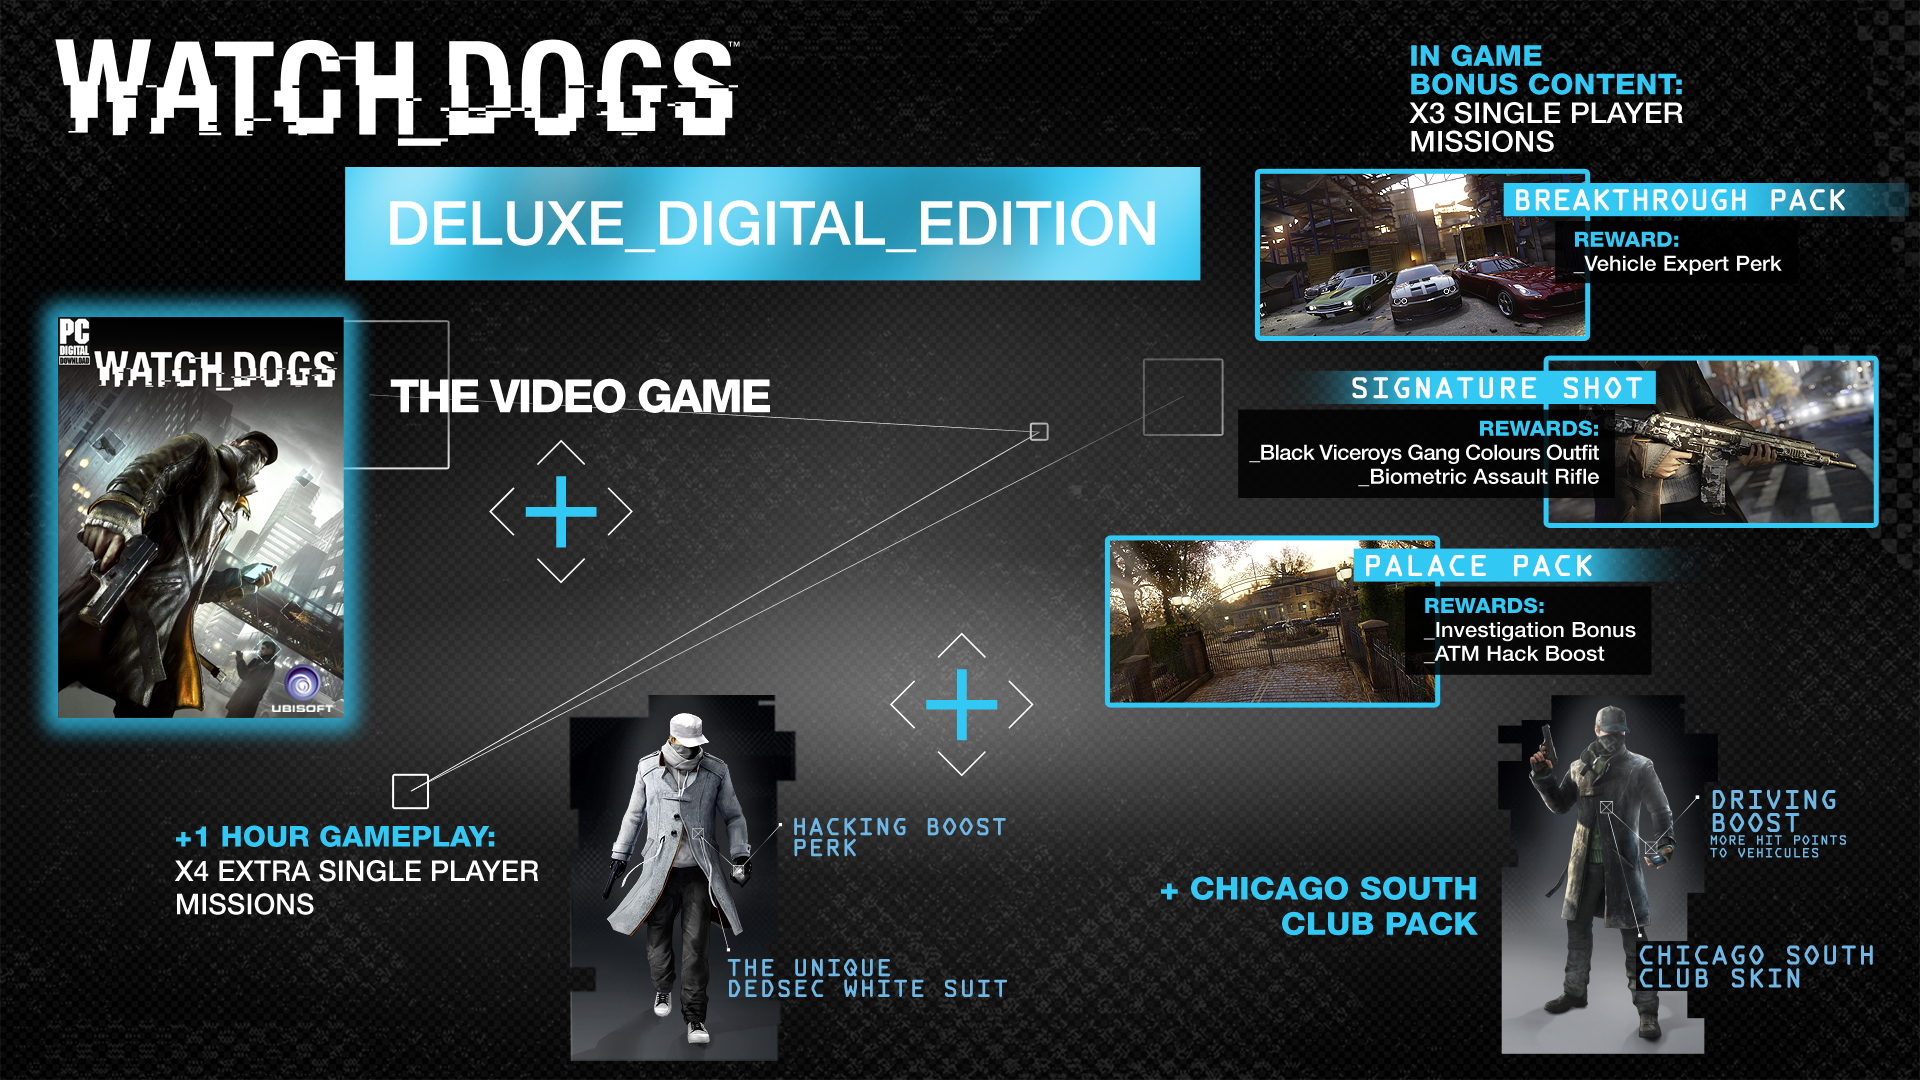 Watch_dogs2 deluxe edition on uplay pc game | hrk game.